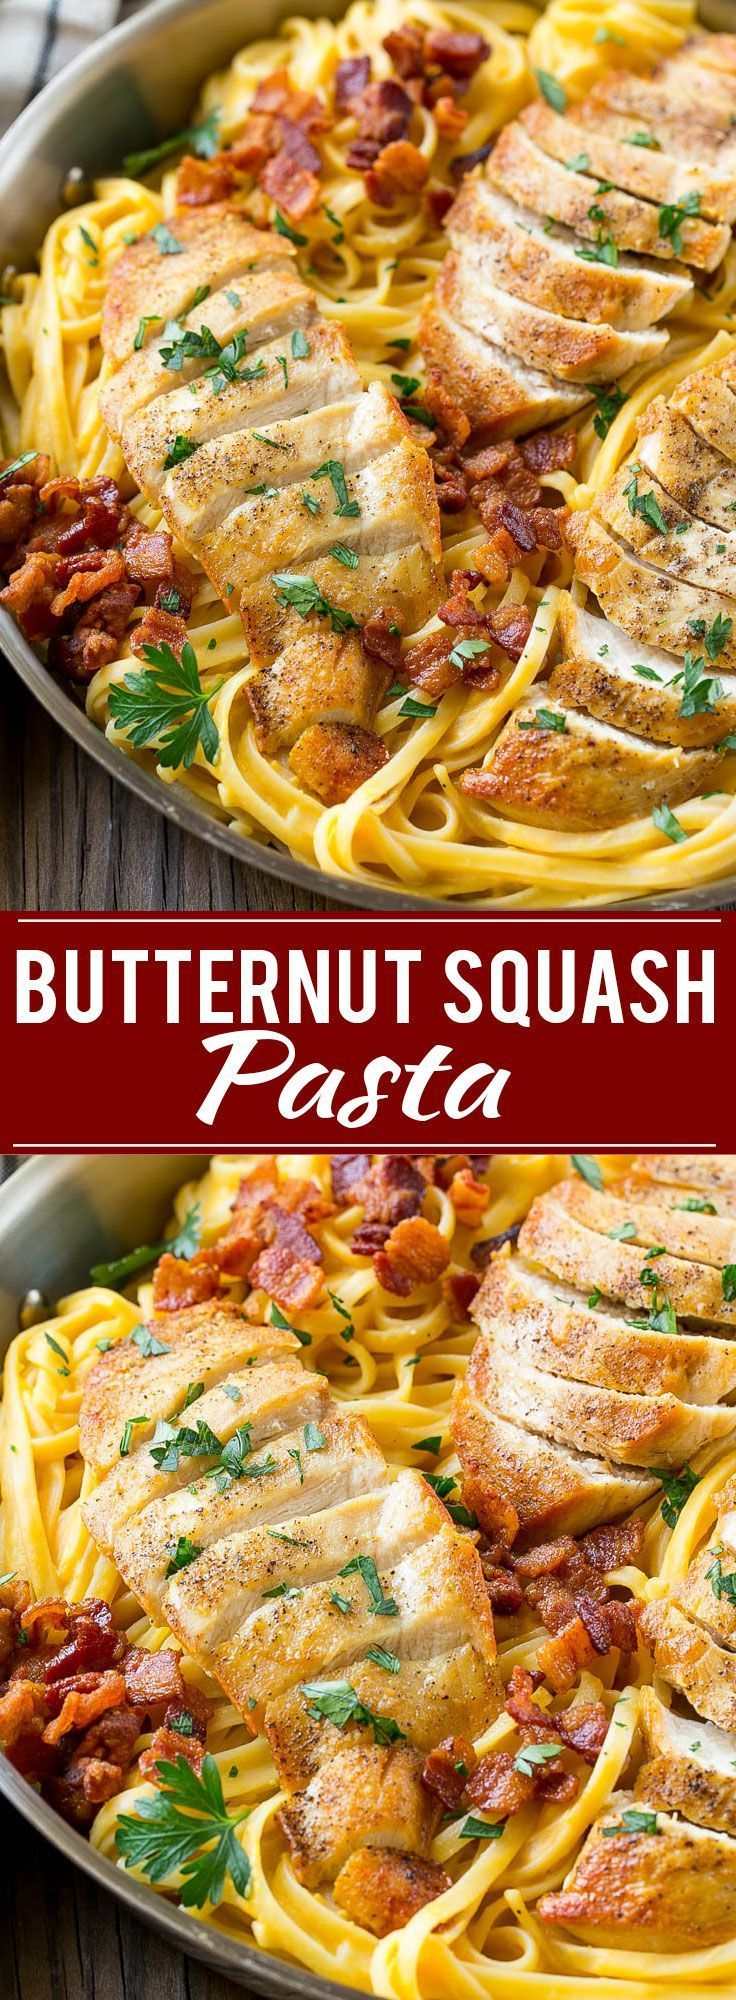 This recipe for butternut squash pasta is linguine in a creamy butternut squash sauce, topped with chicken, bacon and herbs. An easy and delicious dinner that's perfect for fall! #FamilyPastaTime #ad